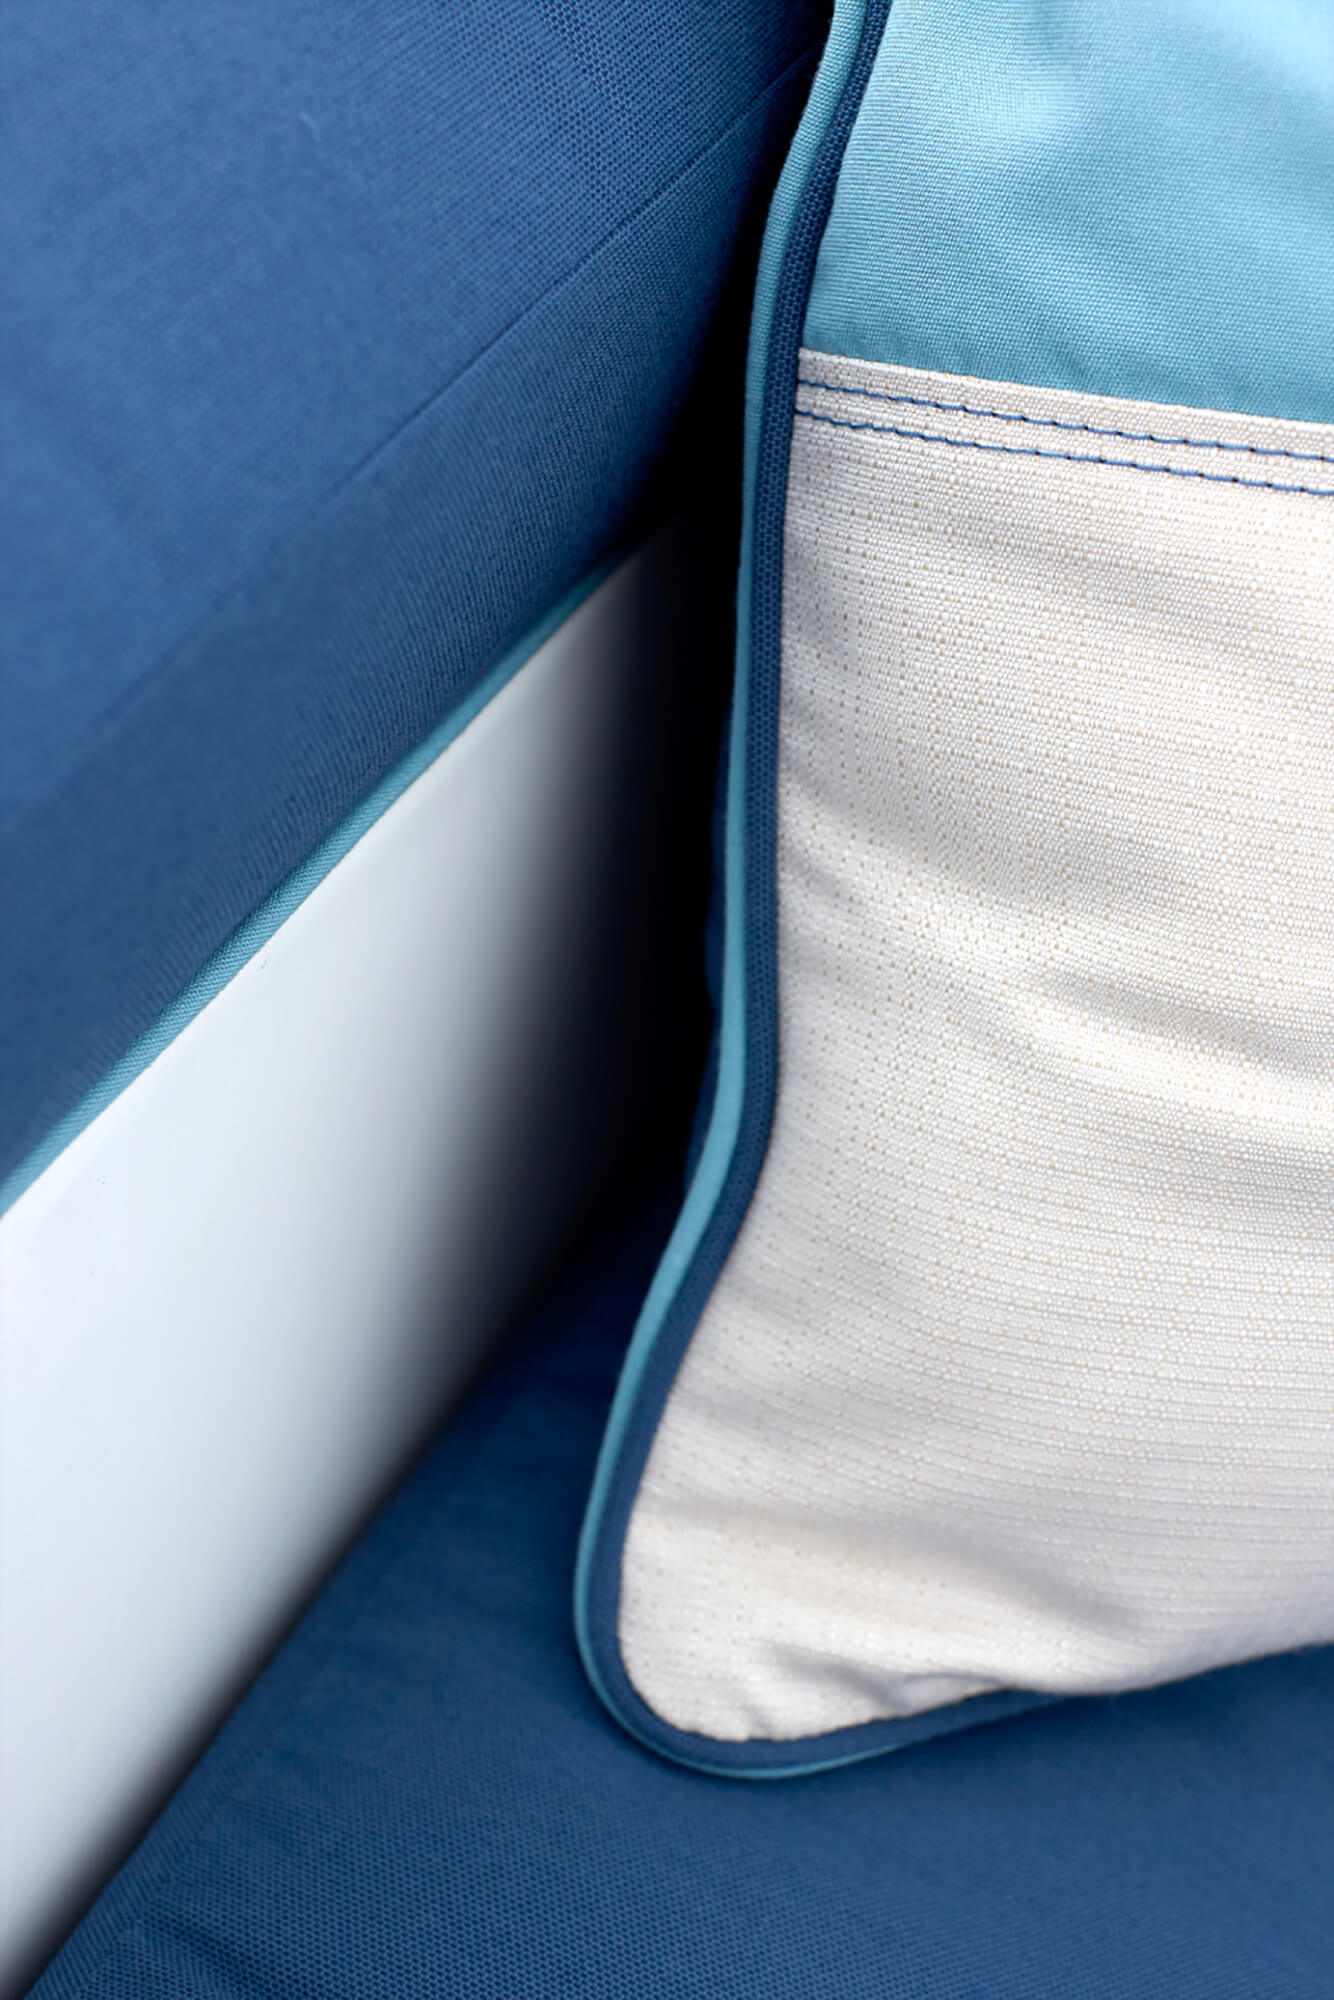 Detail photo of pillow with blue and white fabrics sitting on a blue cushion.